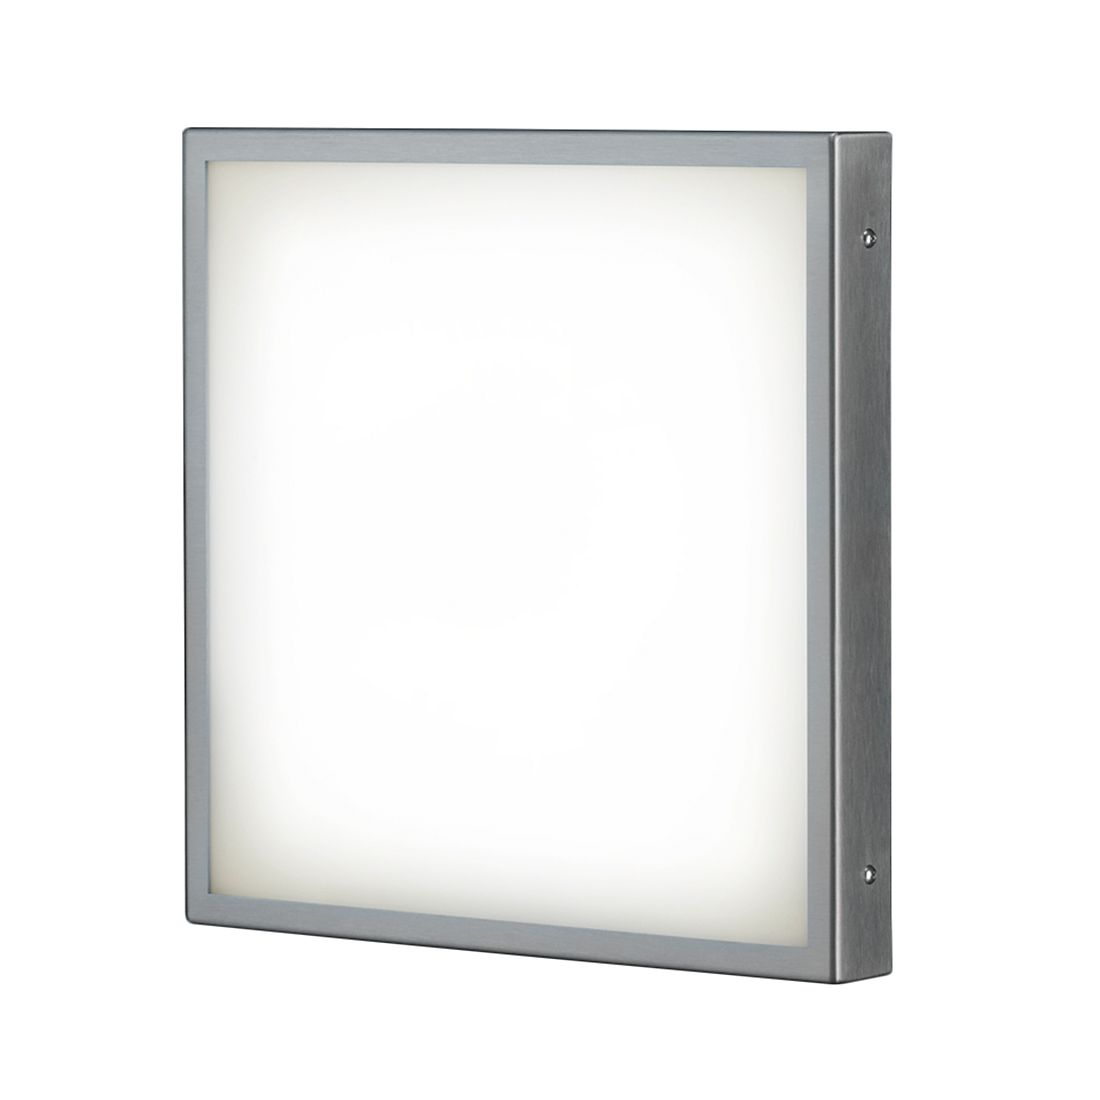 Applique murale SCALA LED